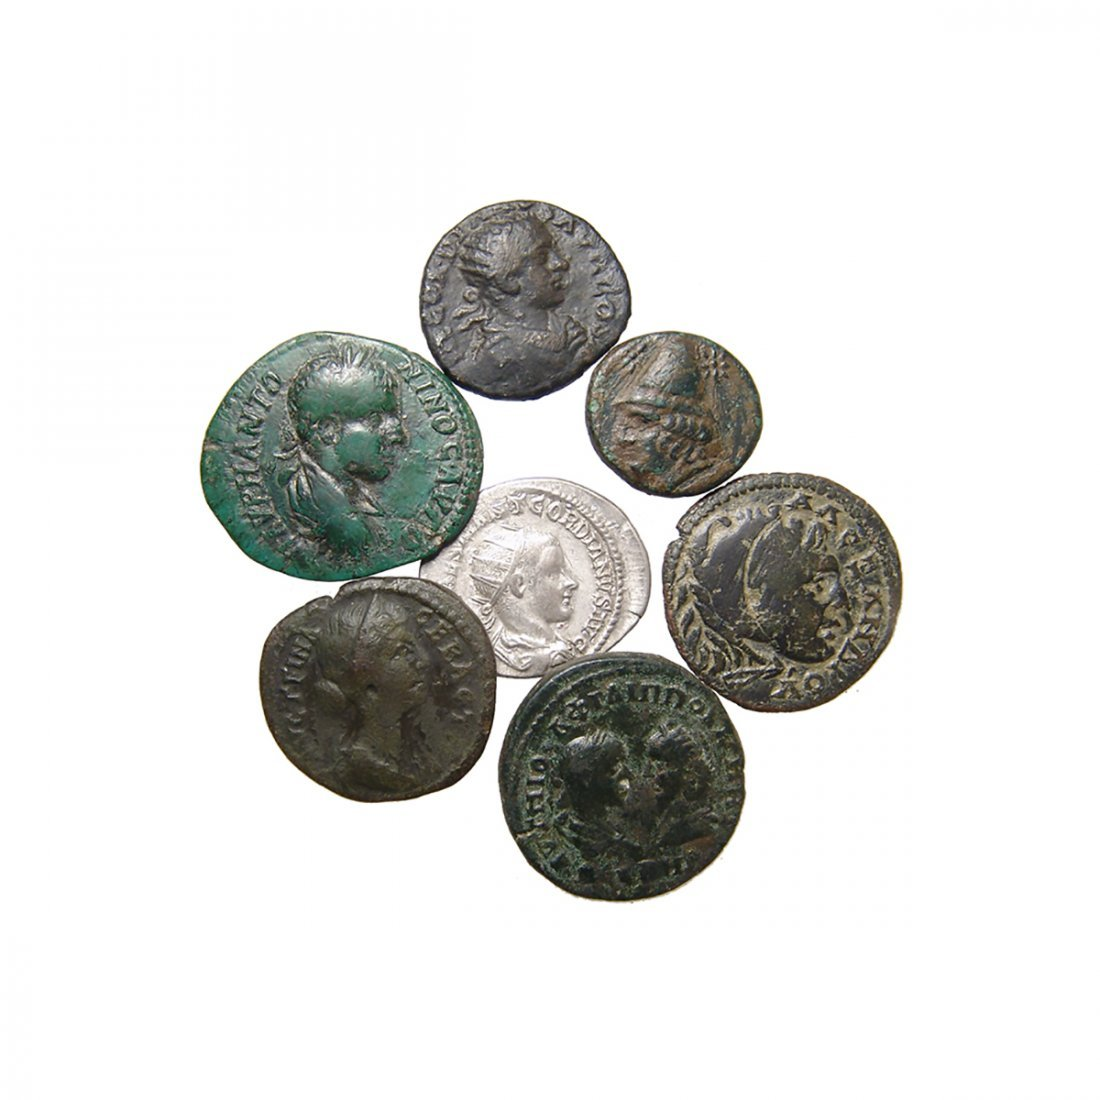 7 Greek and Roman coins in silver and bronze